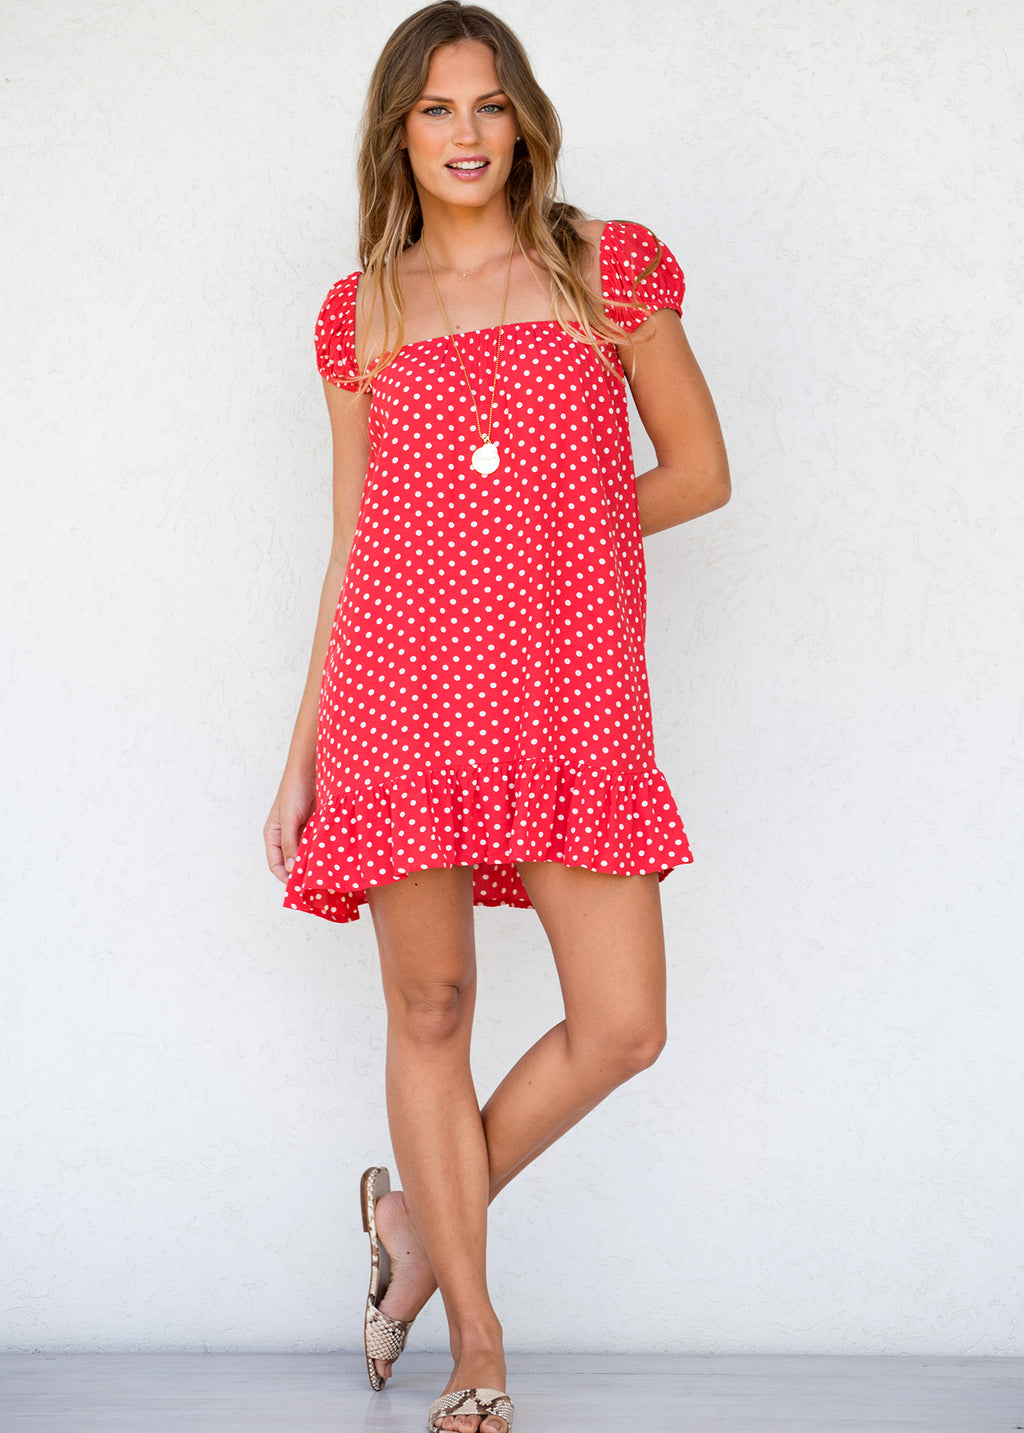 BELL DRESS POLKA DOT CALYPSO RED